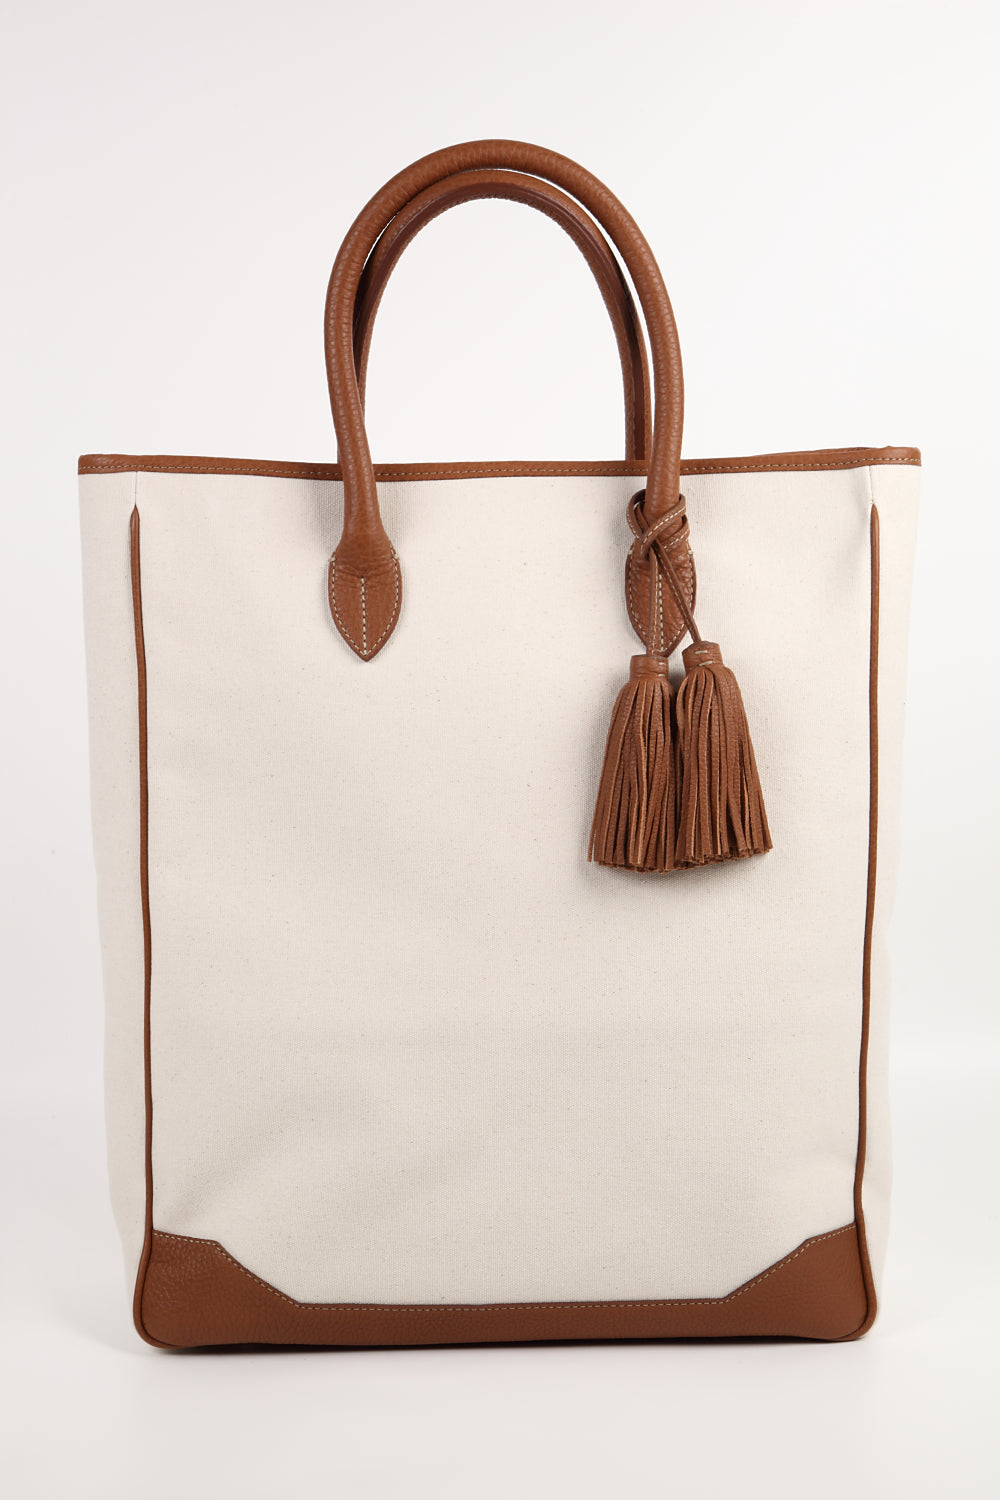 !Bolsa Acate Sirocco Brown Leather Canvas